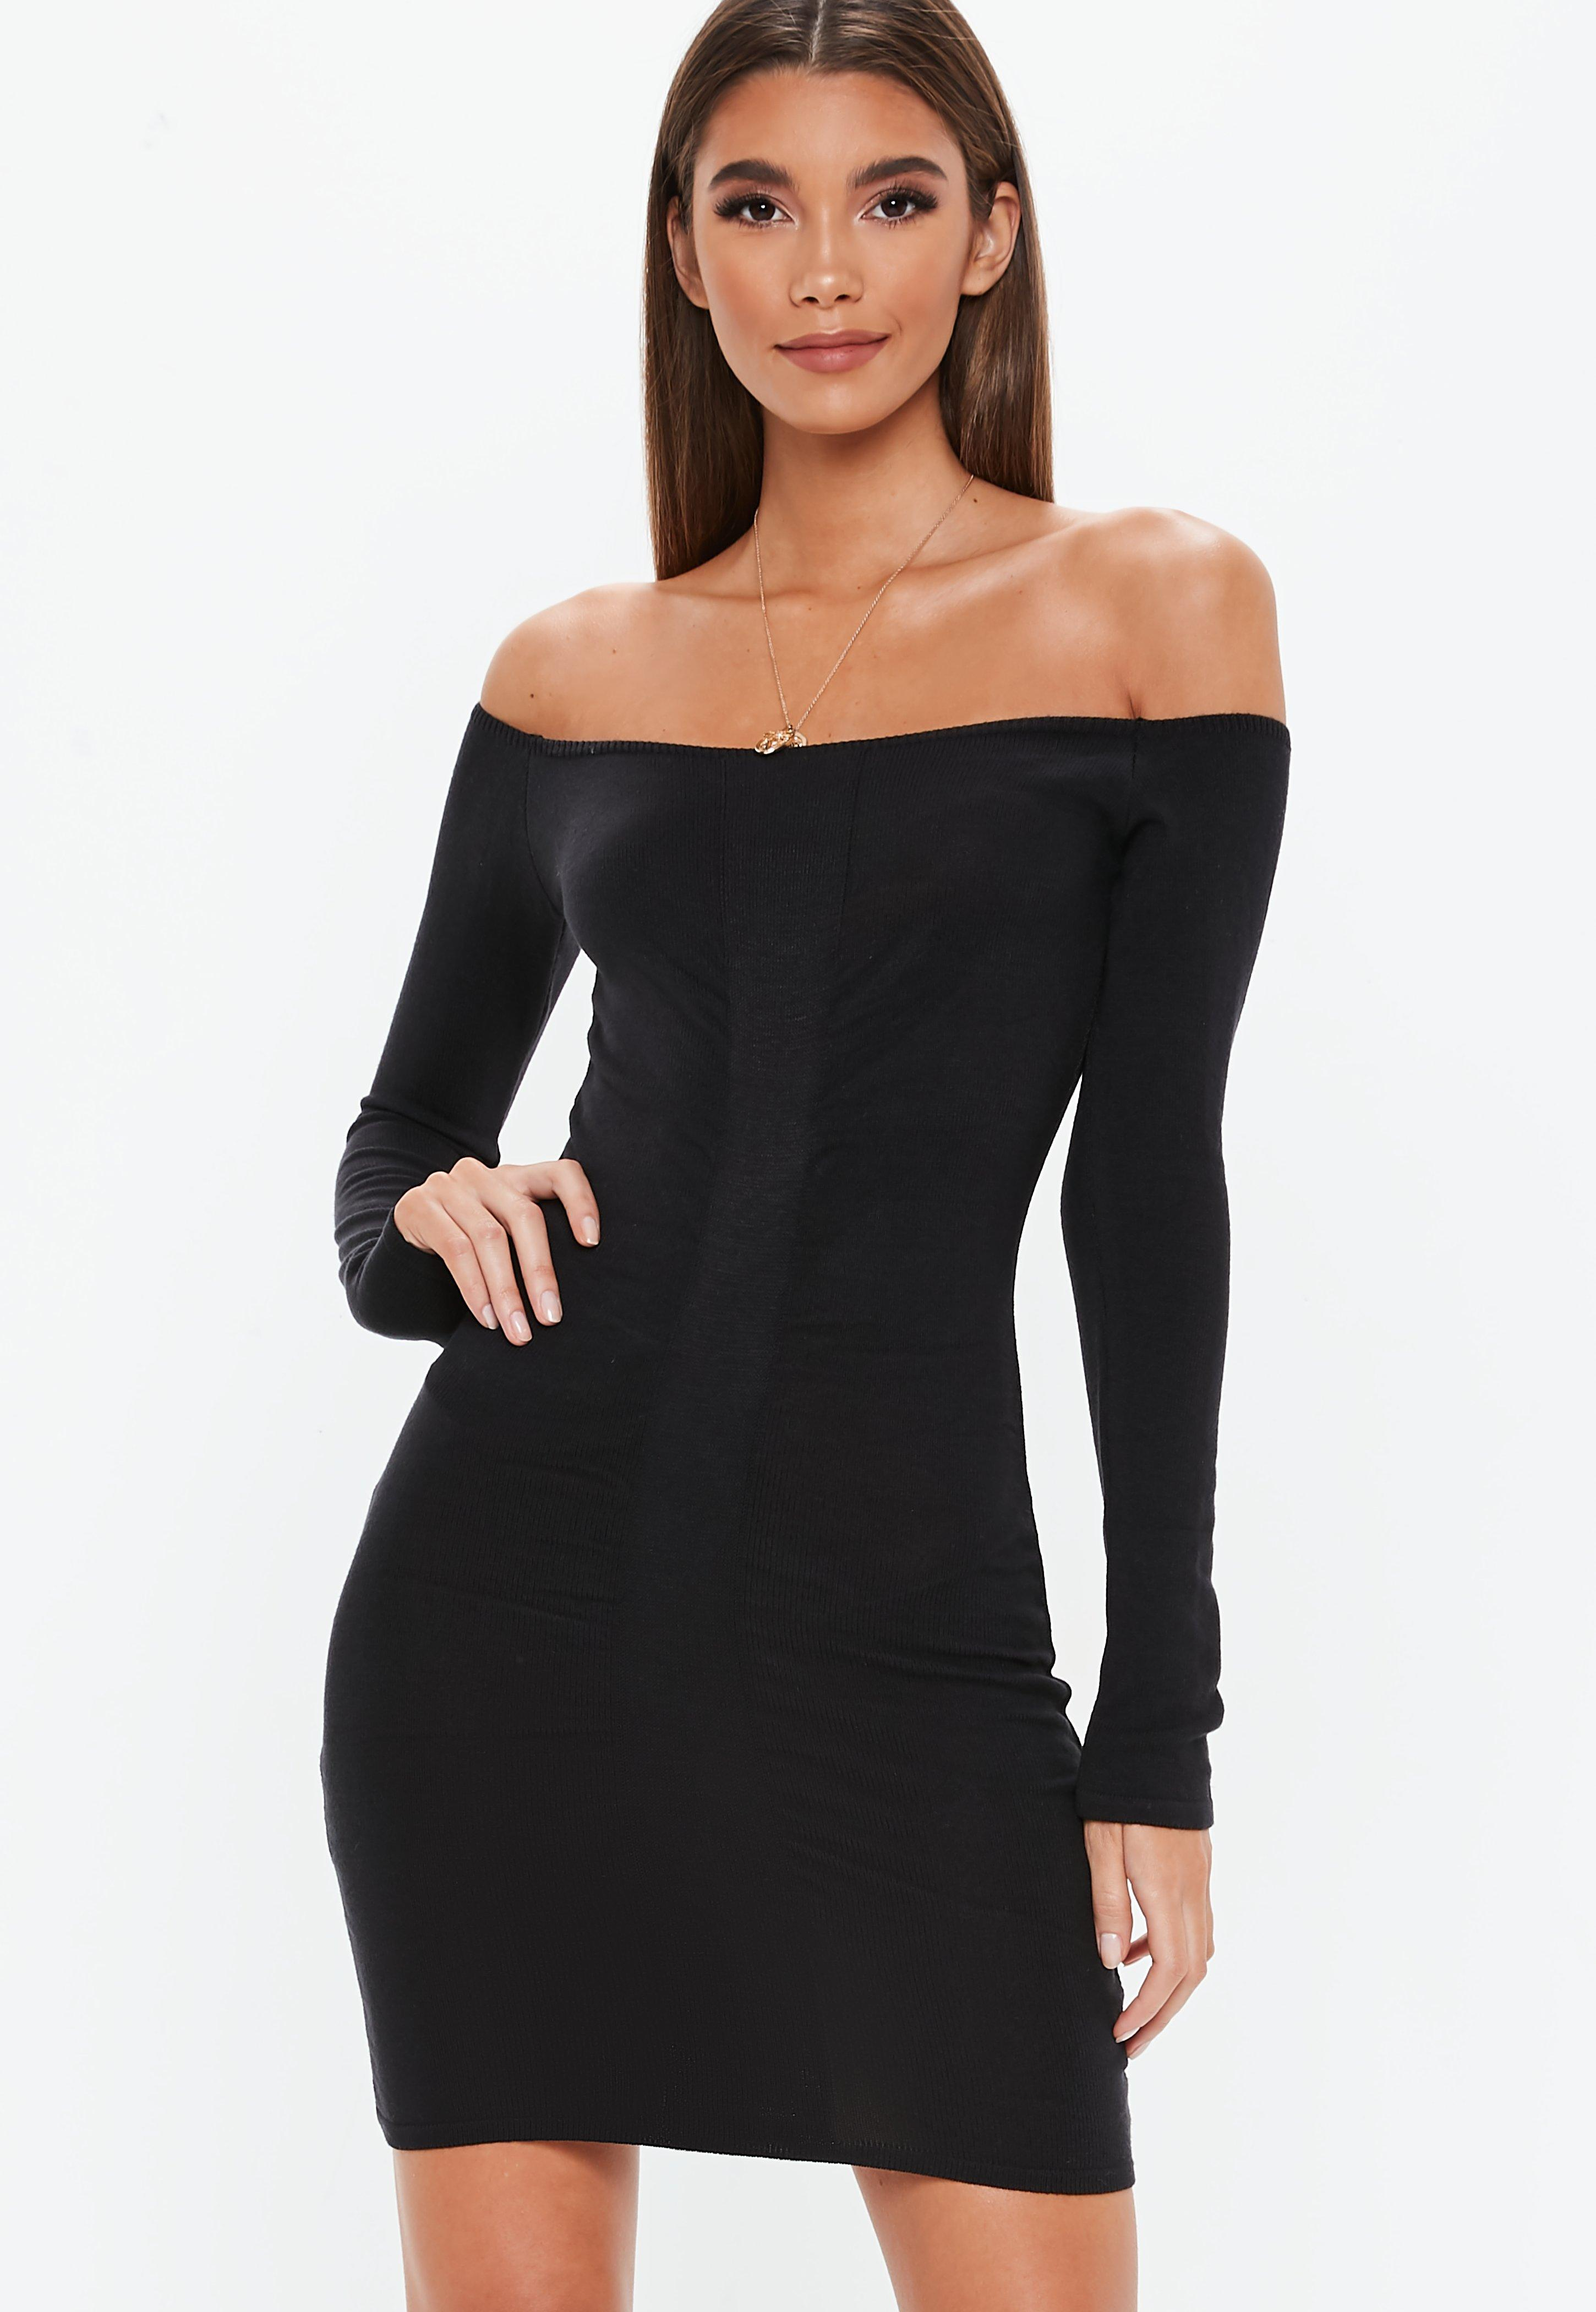 Buy Cheap Ebay Missguided Ruched Detail Bardot Mini knitted Dress Outlet Shop Outlet Discounts CuS9Ipd